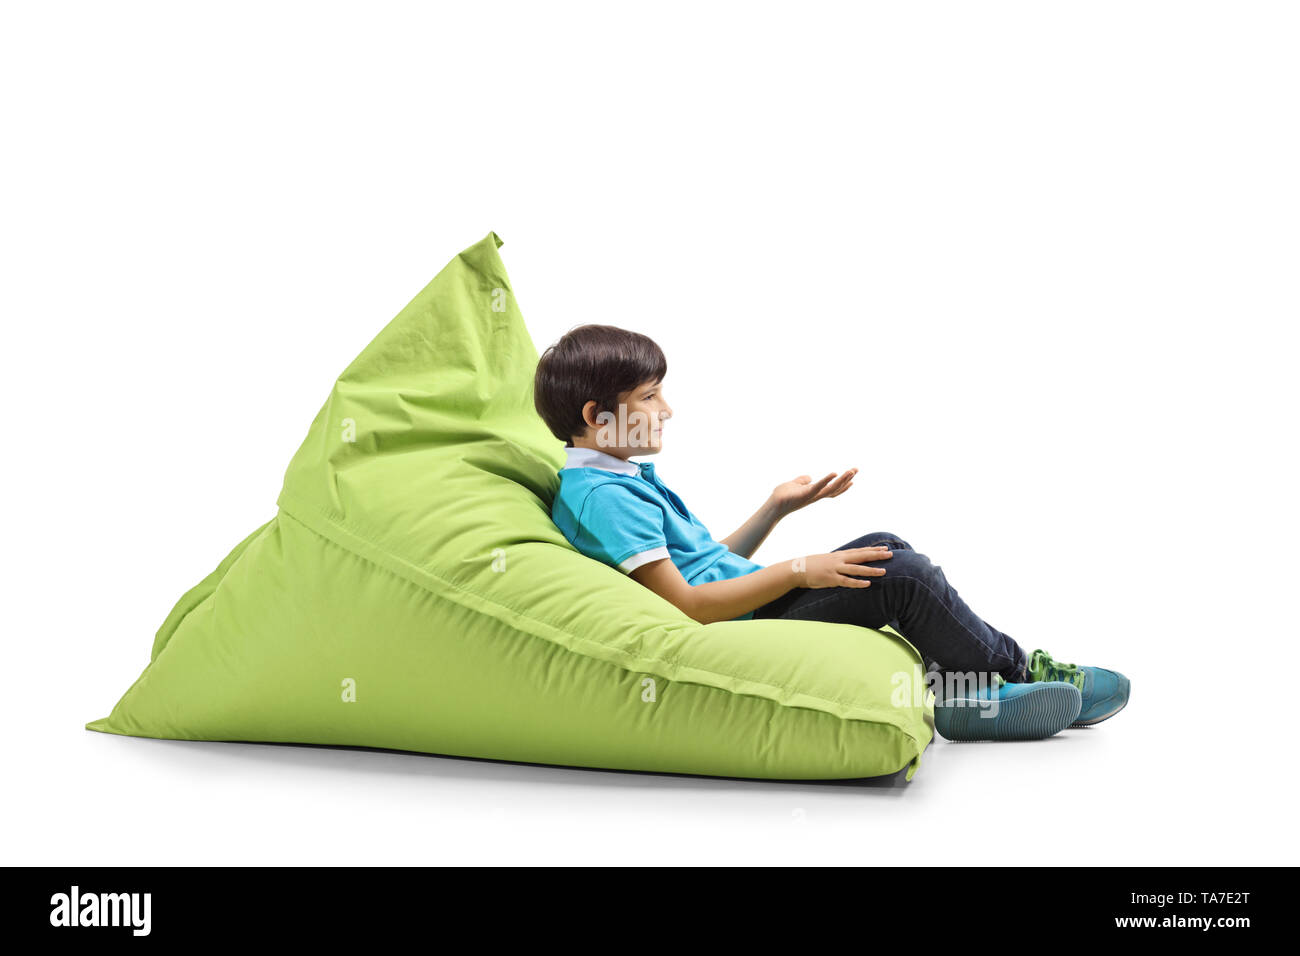 Full length profile shot of a boy sitting on a green bean bag and gesturing with hand isolated on white background - Stock Image